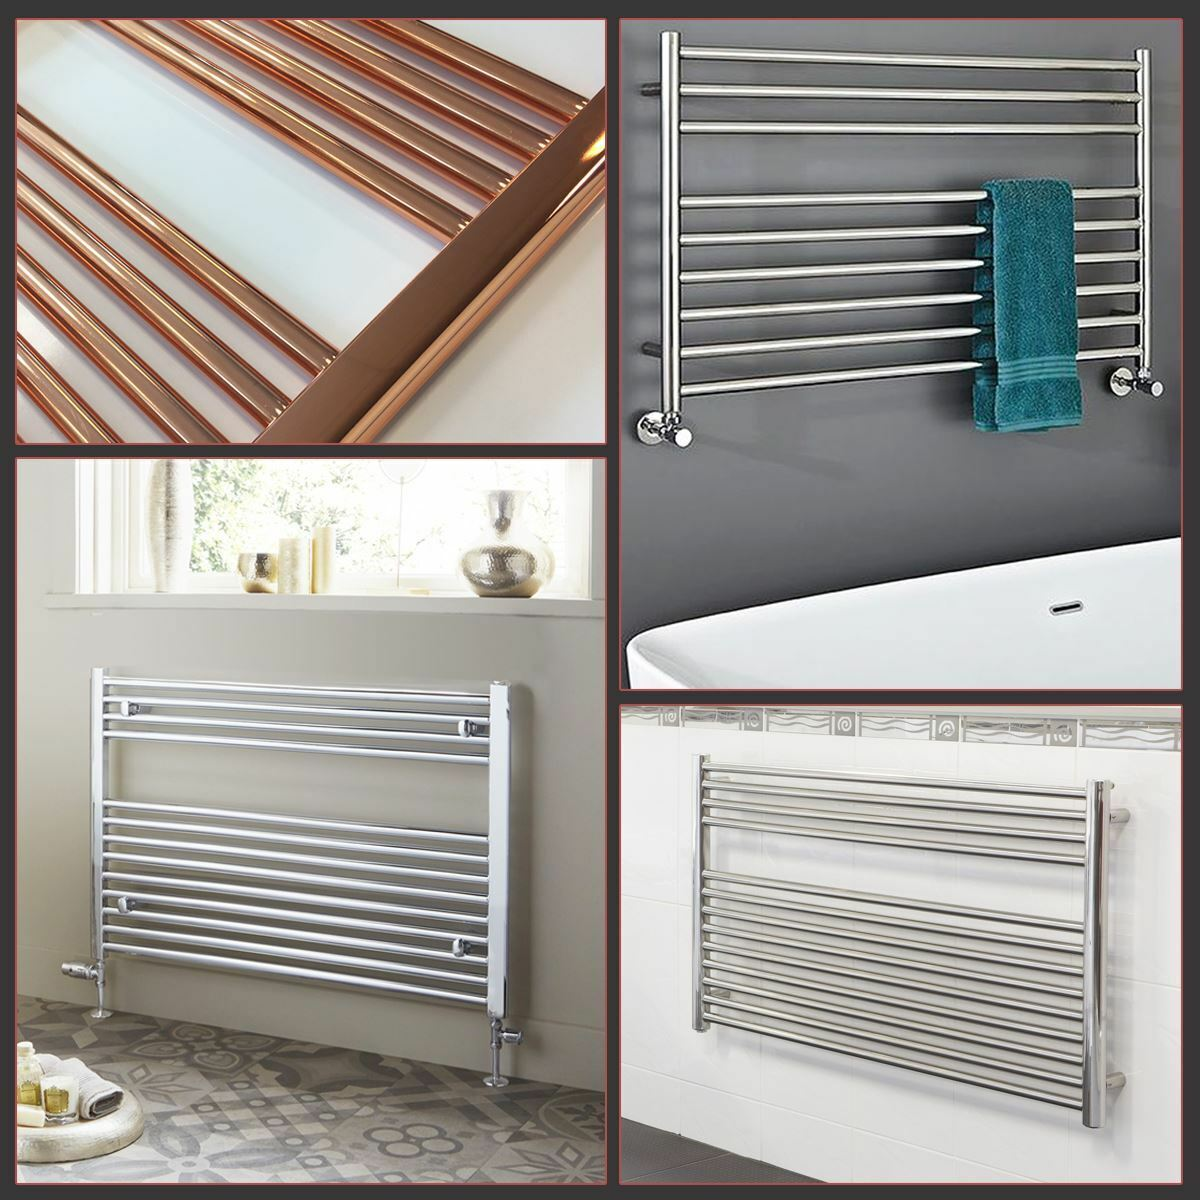 HIGH QUALITY  Chrome, Copper OR Stainless Steel HORIZONTAL Heated Towel Rails